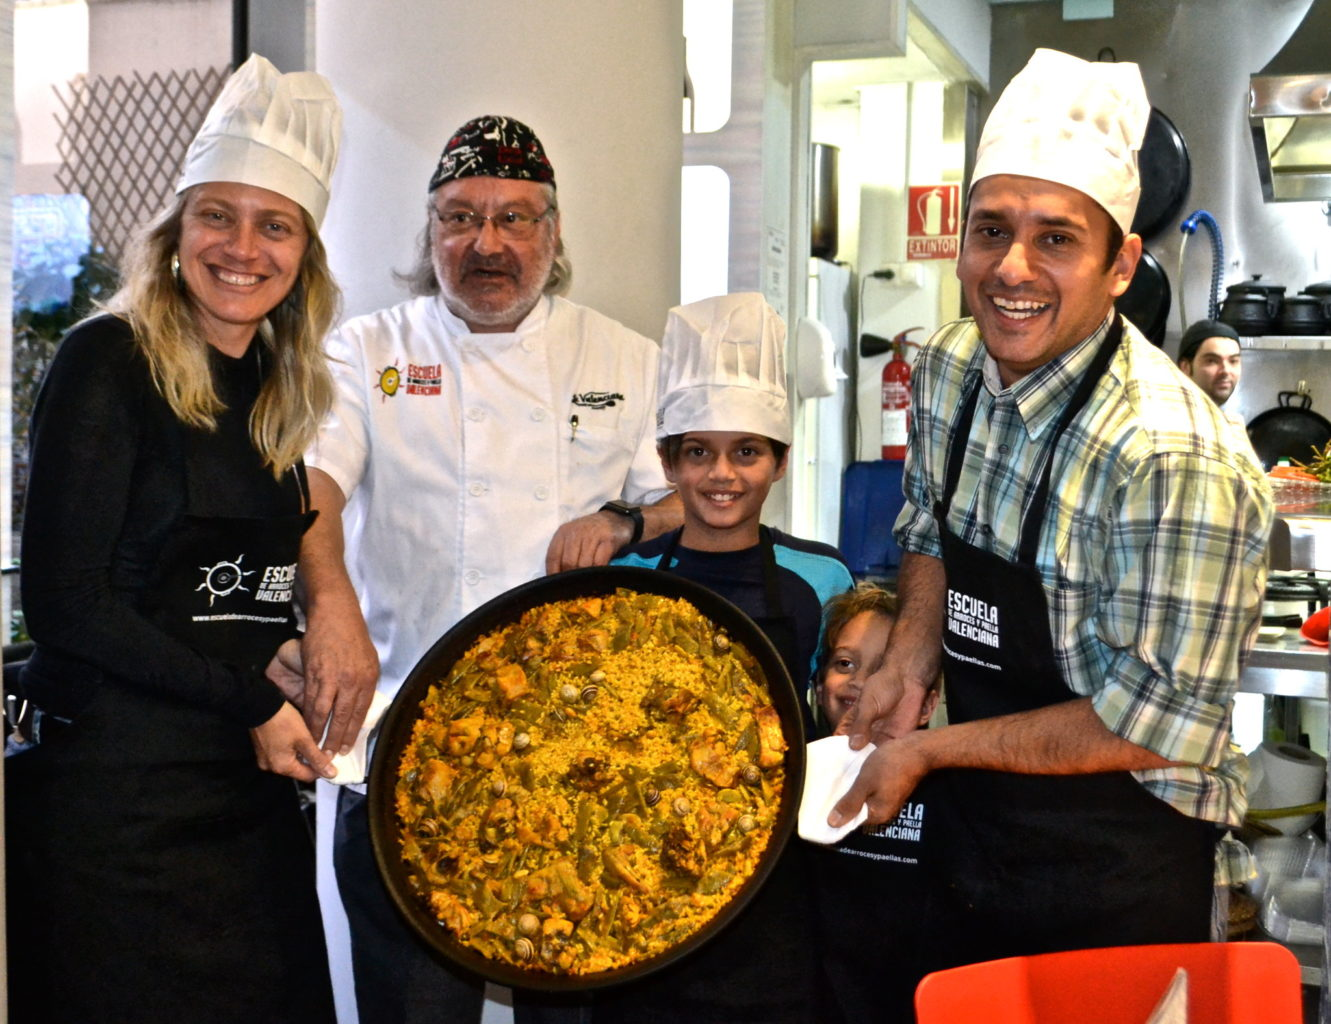 Family paella cooking tour and meal in Spain - TravelingMom